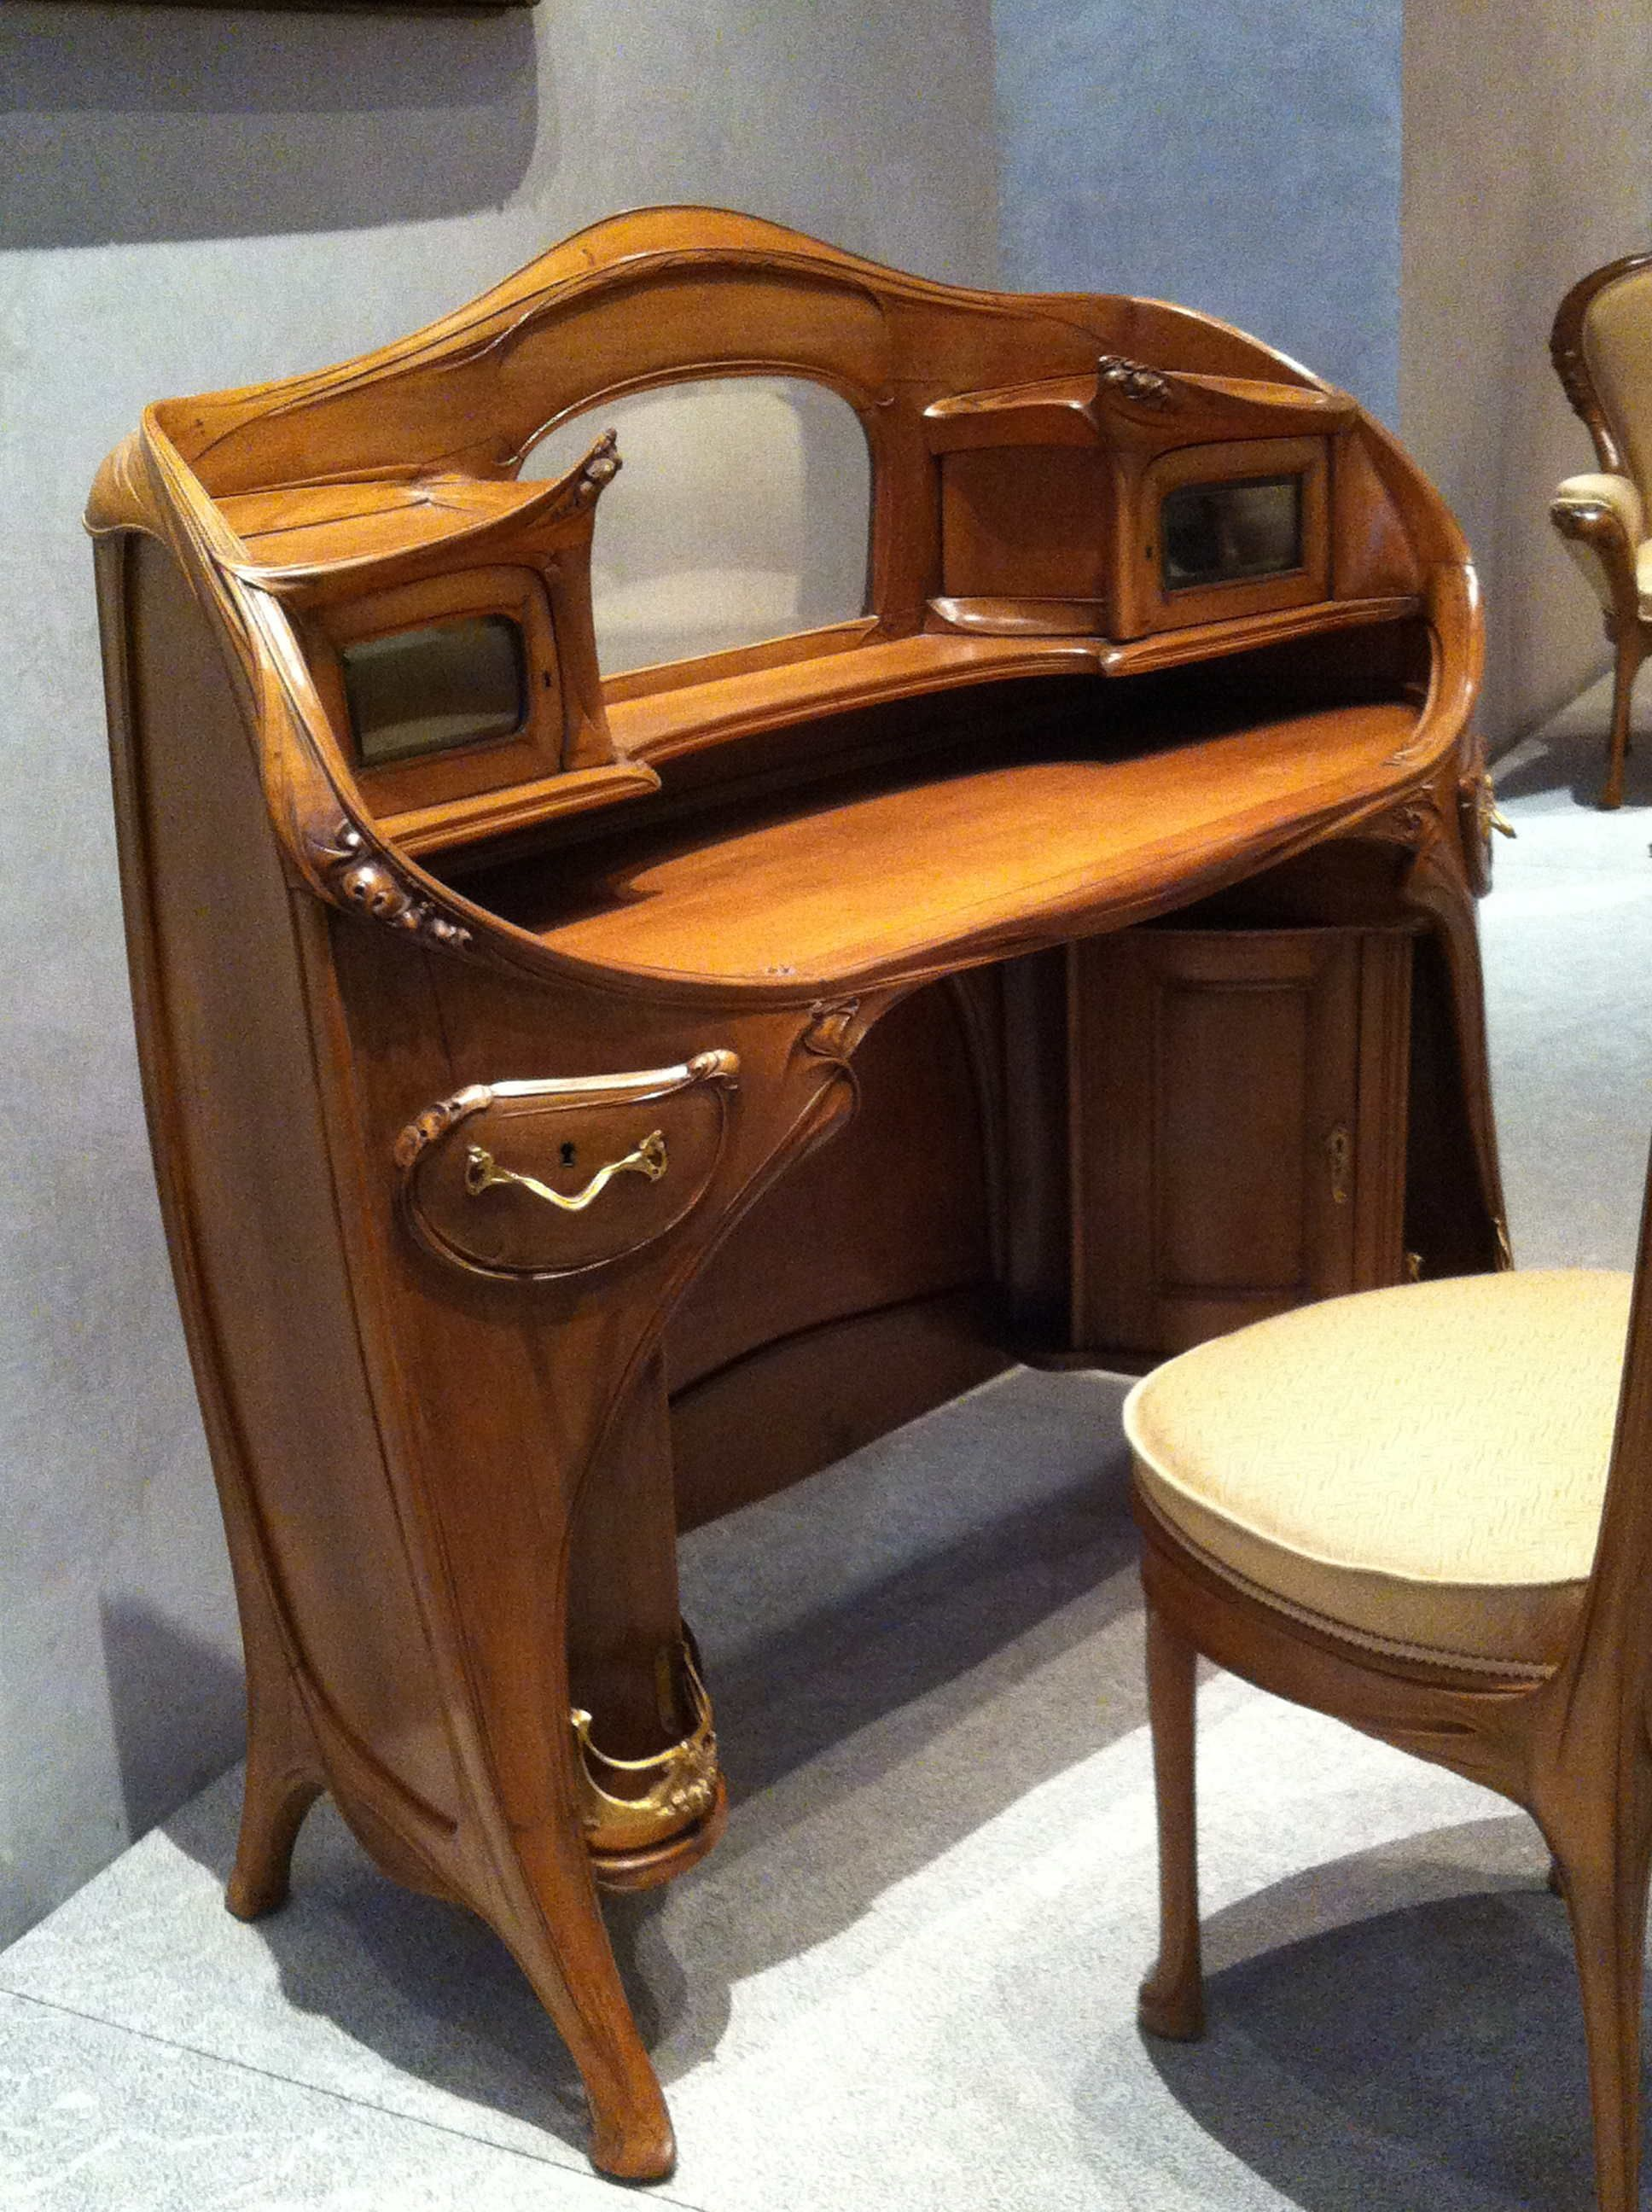 bureau art nouveau hector guimard art nouveau pinterest. Black Bedroom Furniture Sets. Home Design Ideas